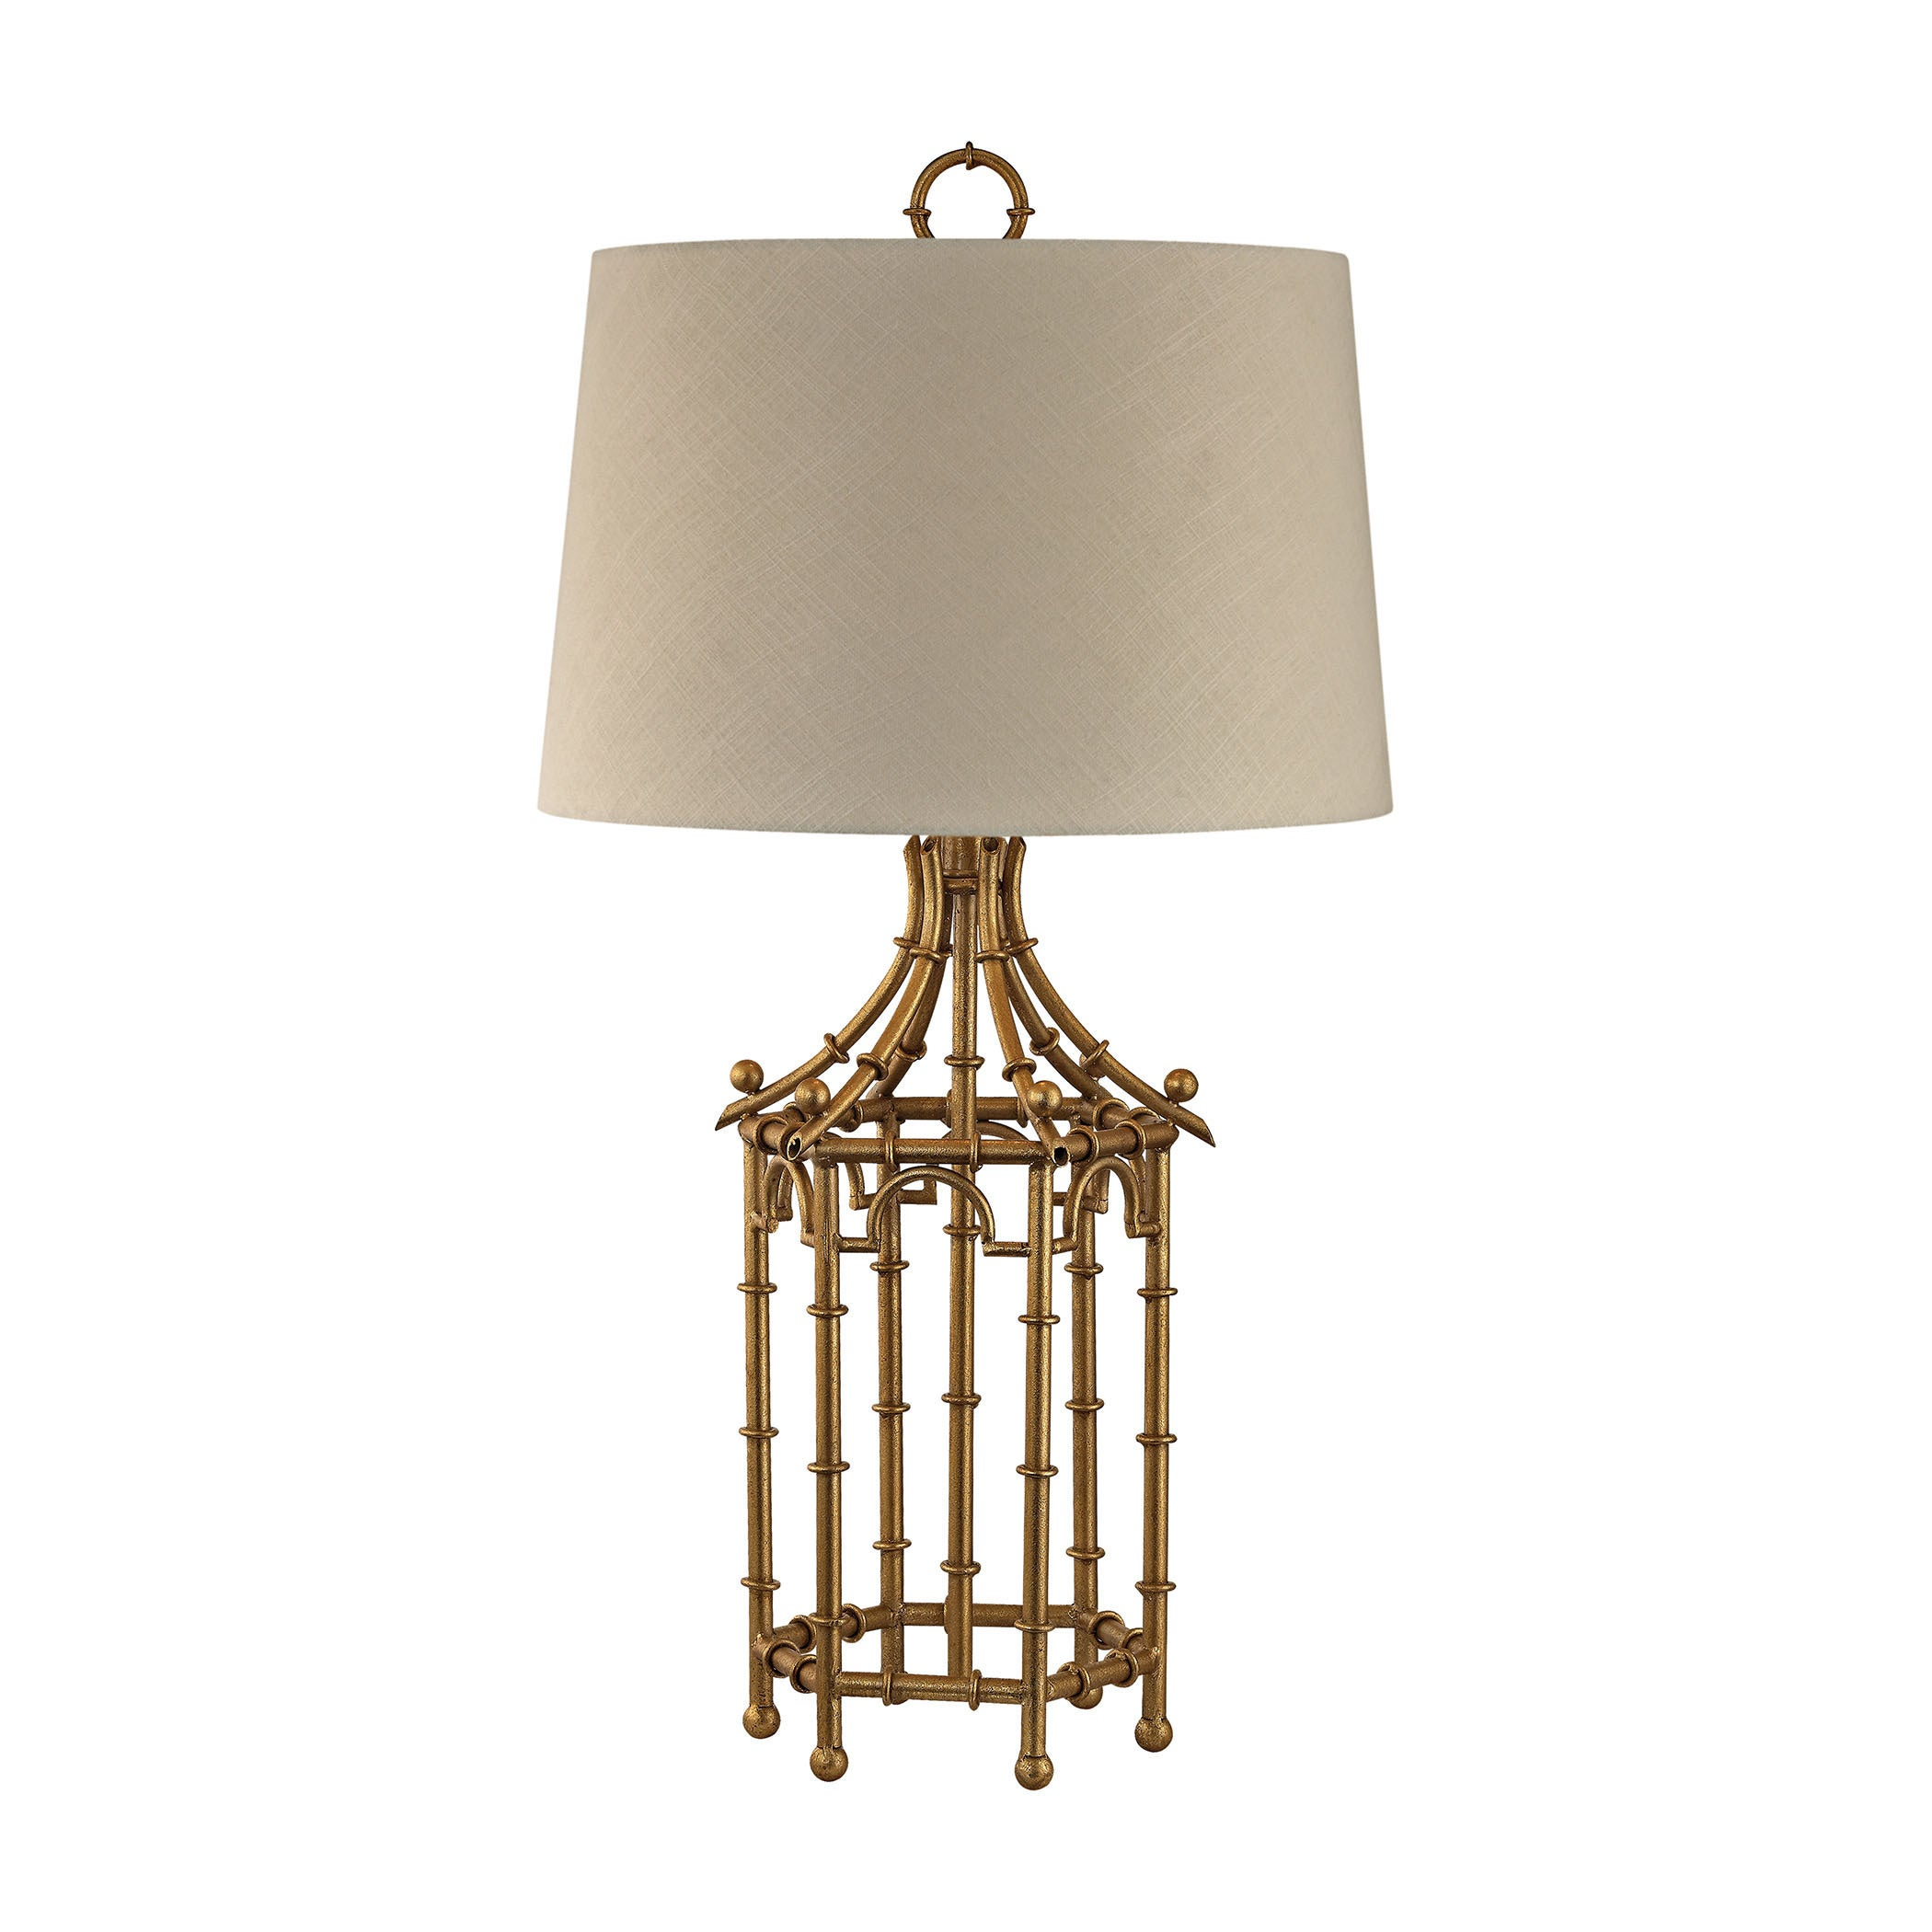 com lamp product rusticator lightolier birdcage